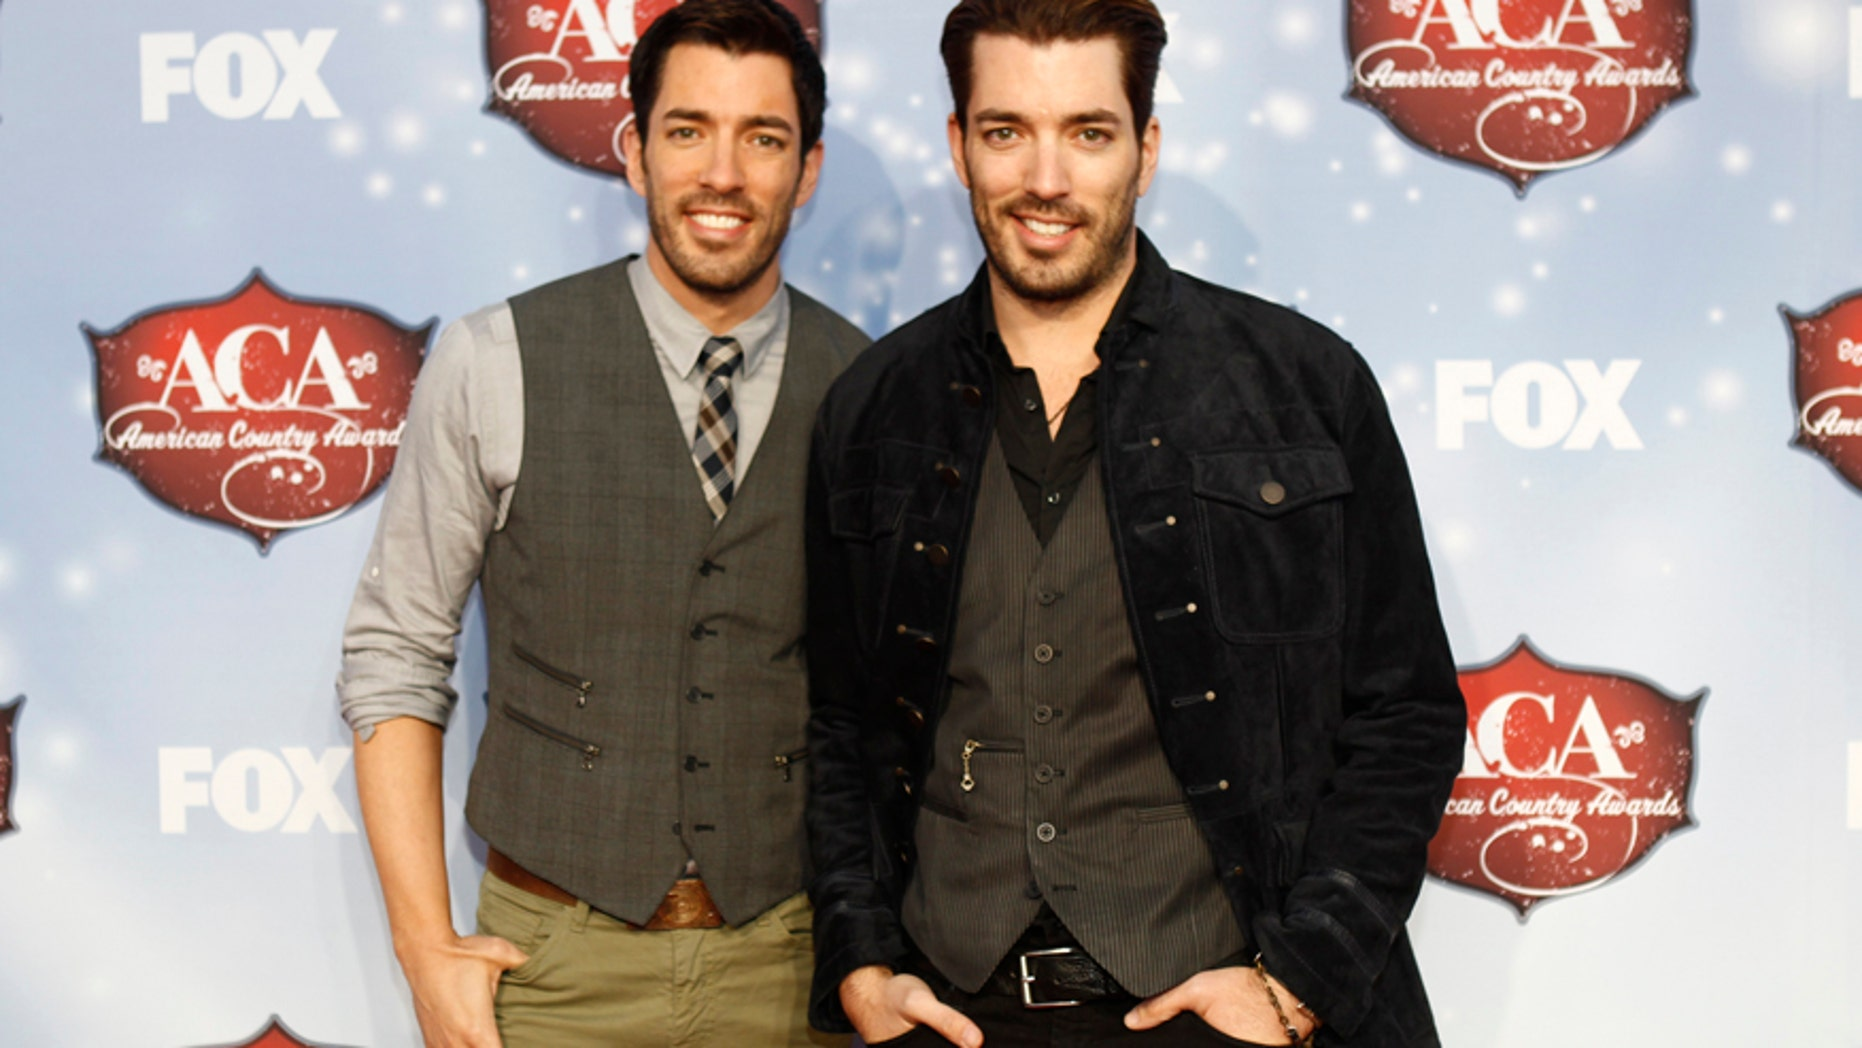 Jonathan Scott Responds to Backlash He Received for His Stance on the Gun Control Debate